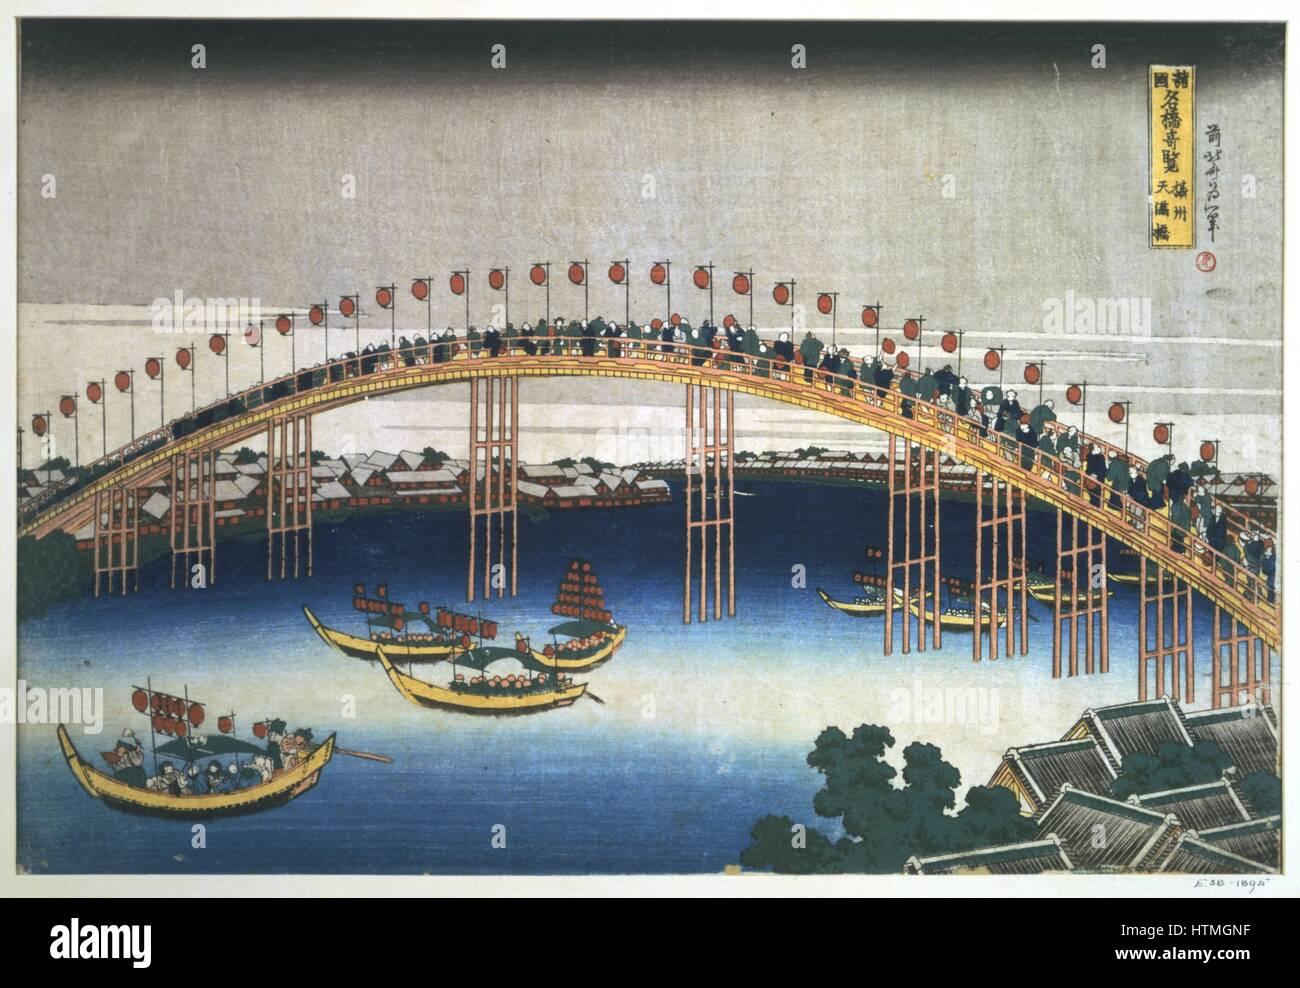 The Temma Bridge at Osaka', c1830. Coloured woodblock print. People crowd on the wooden bridge which is decked - Stock Image